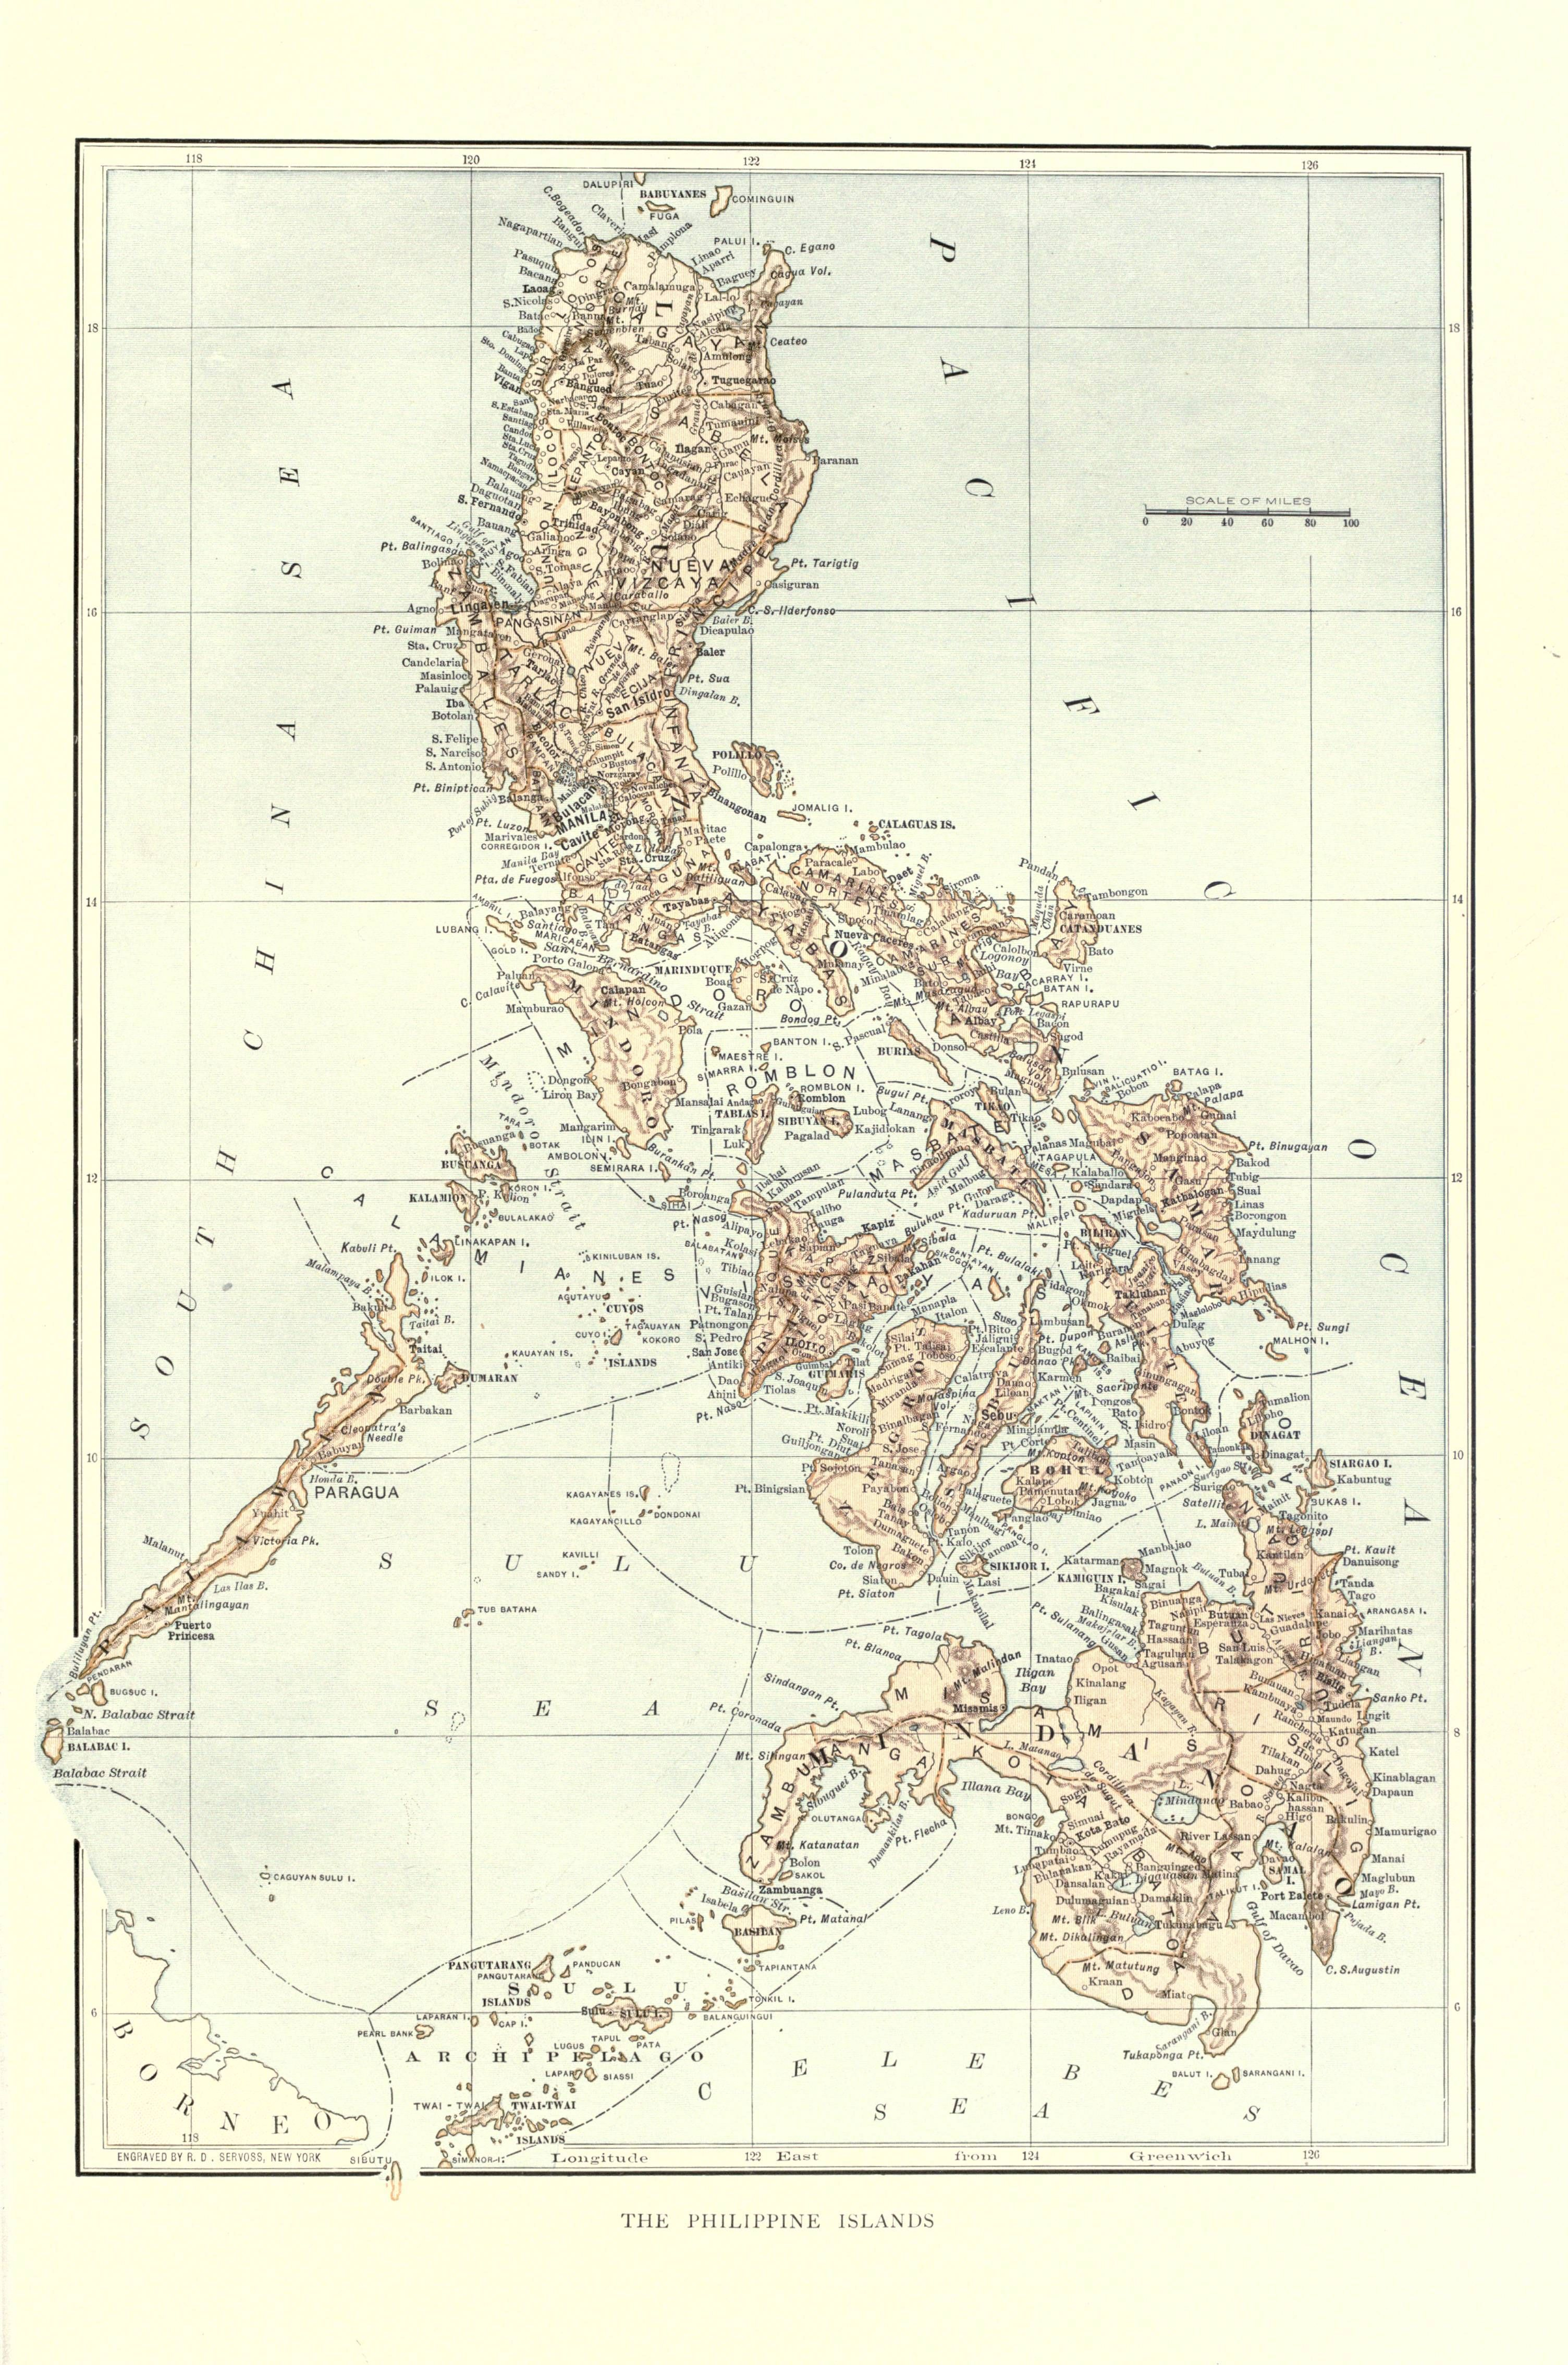 map of the philippines at the end of the th century from  - map of the philippines at the end of the th century from harper'spictorial history